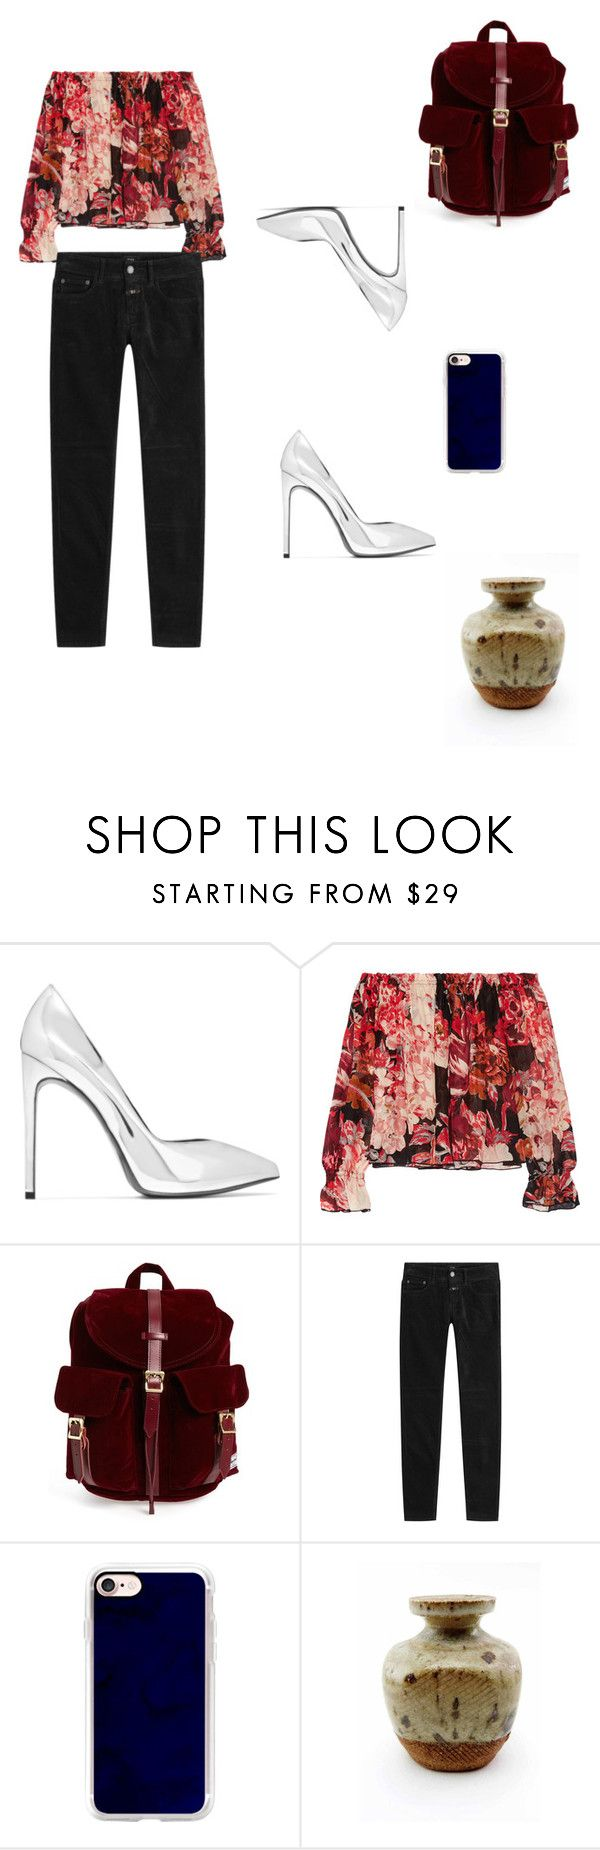 """""""2017.1.14"""" by joe-khulan on Polyvore featuring Yves Saint Laurent, Elizabeth and James, Herschel Supply Co., Closed and Casetify"""